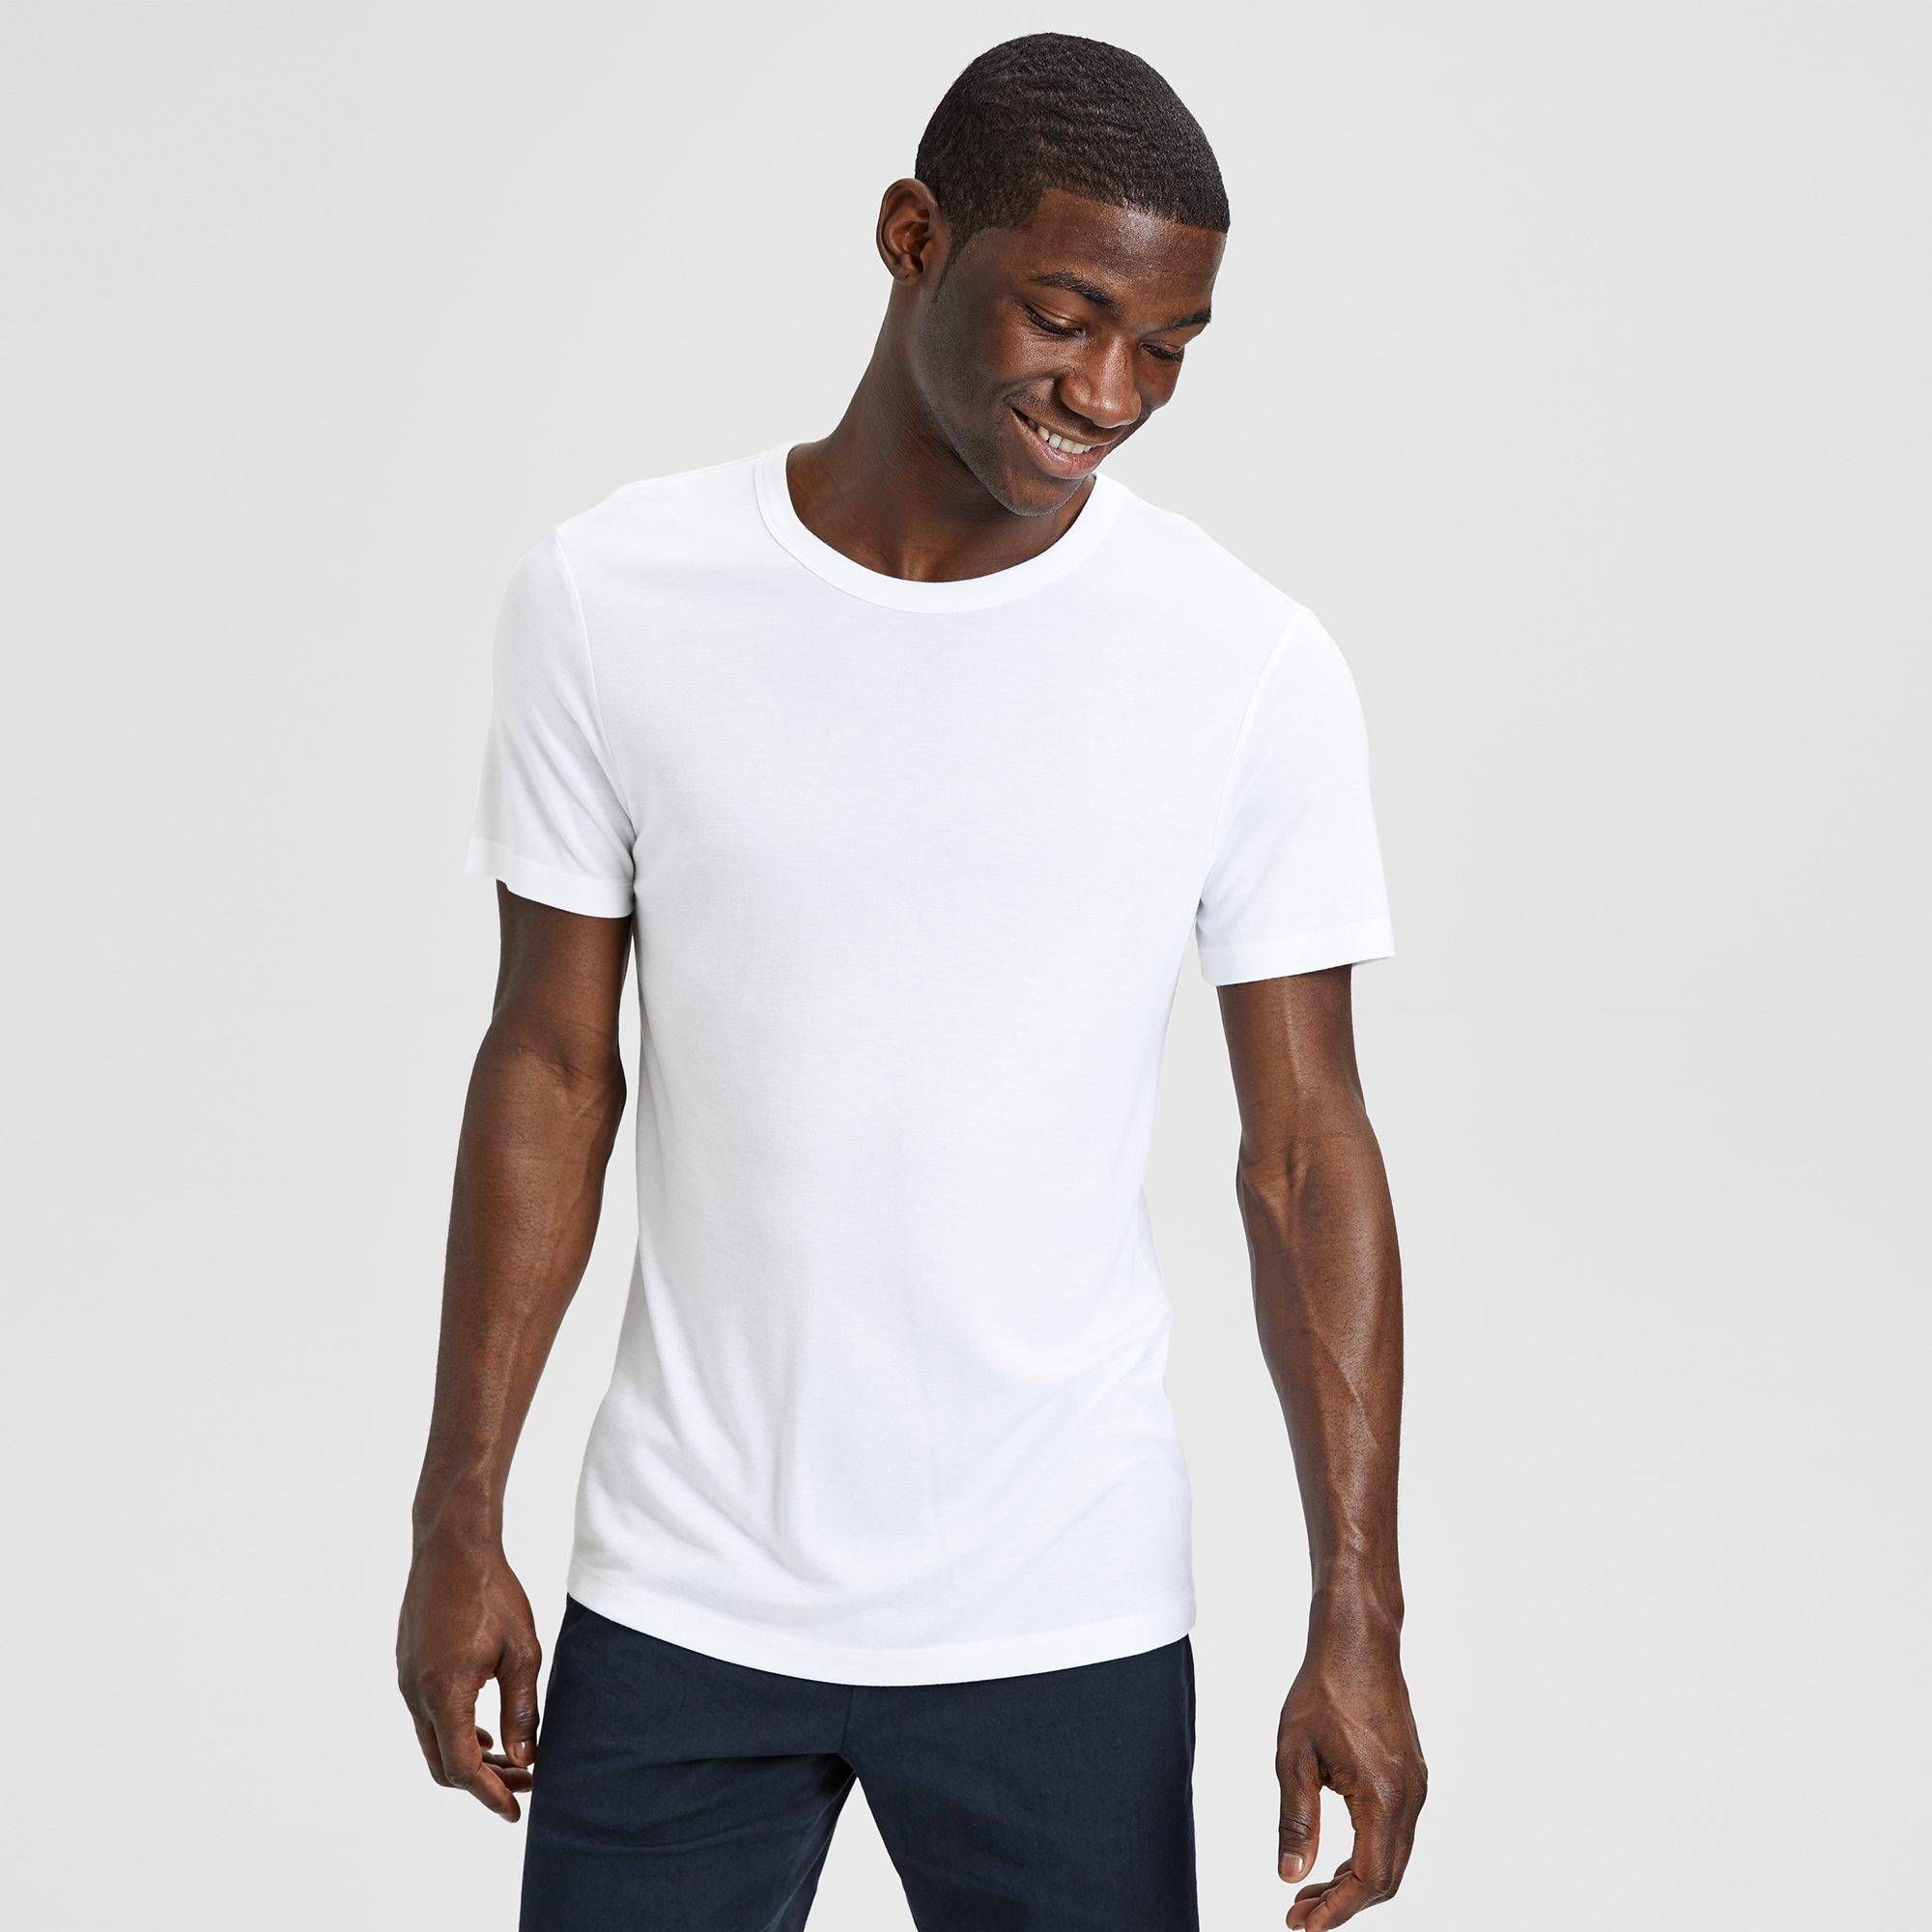 Theory Lyocell Essential Tee  - WHITE - male - Size: Extra Small